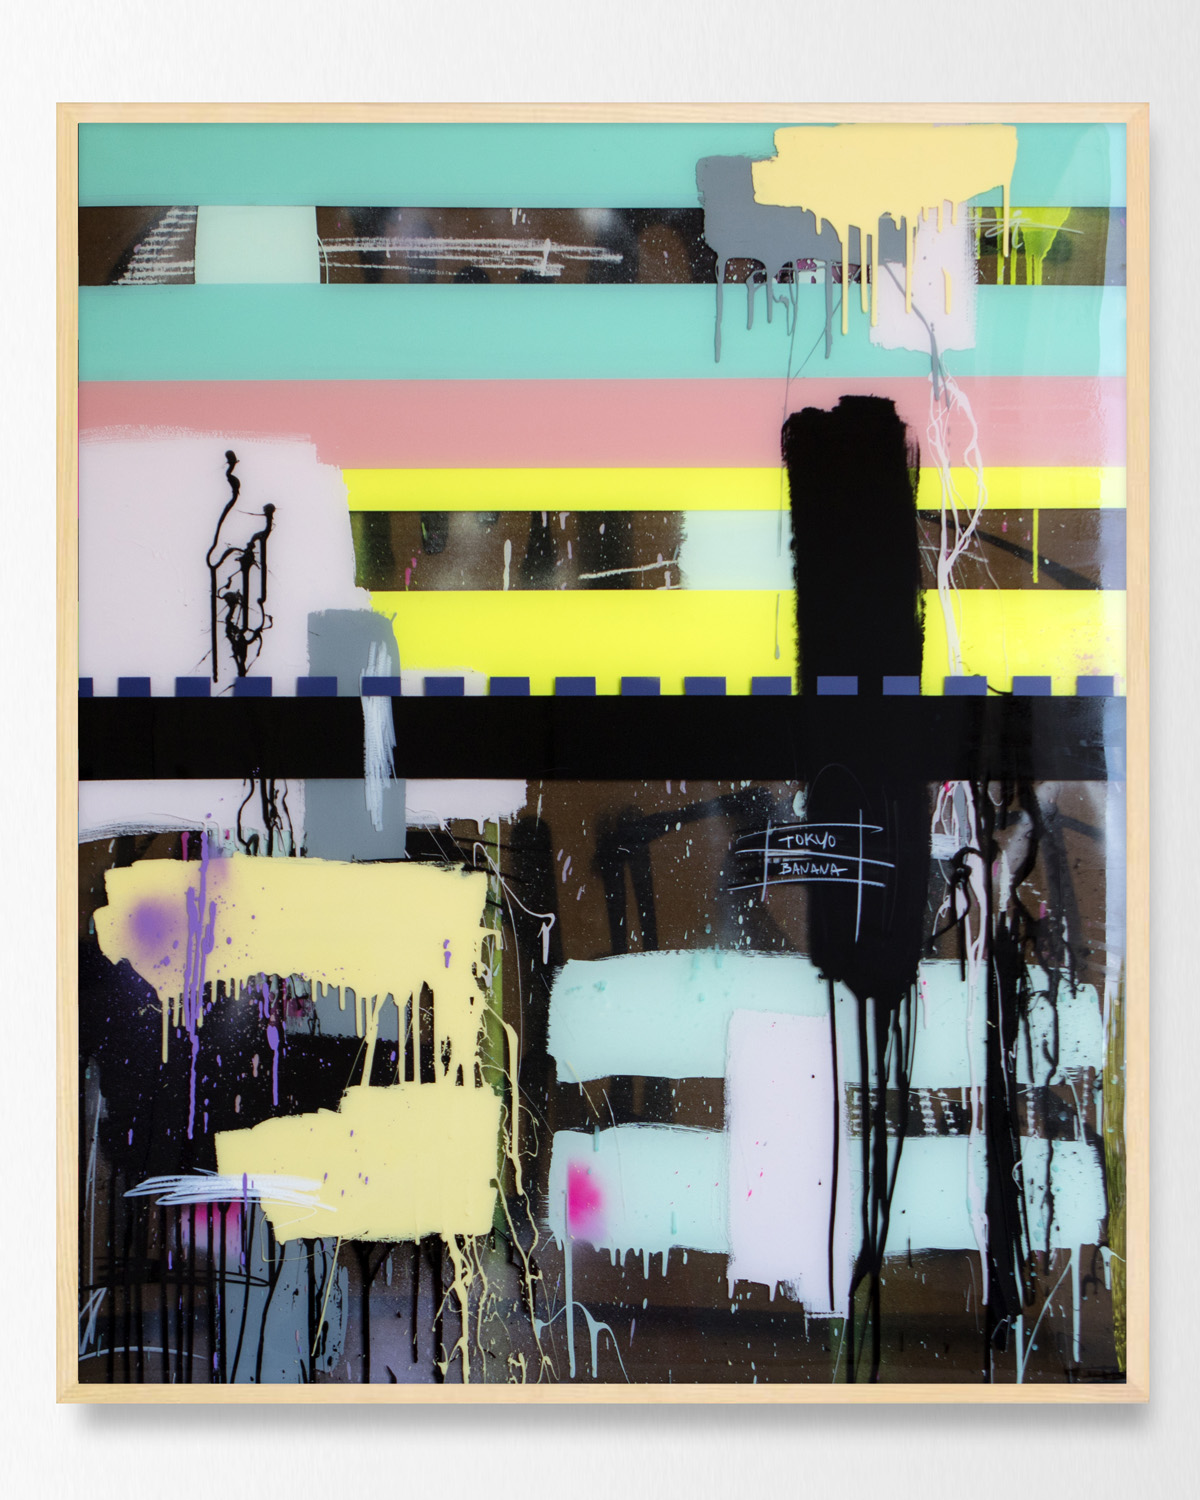 Tokyo Banana 42 x 50 inches mixed media with layered epoxy resin finish JBR 107